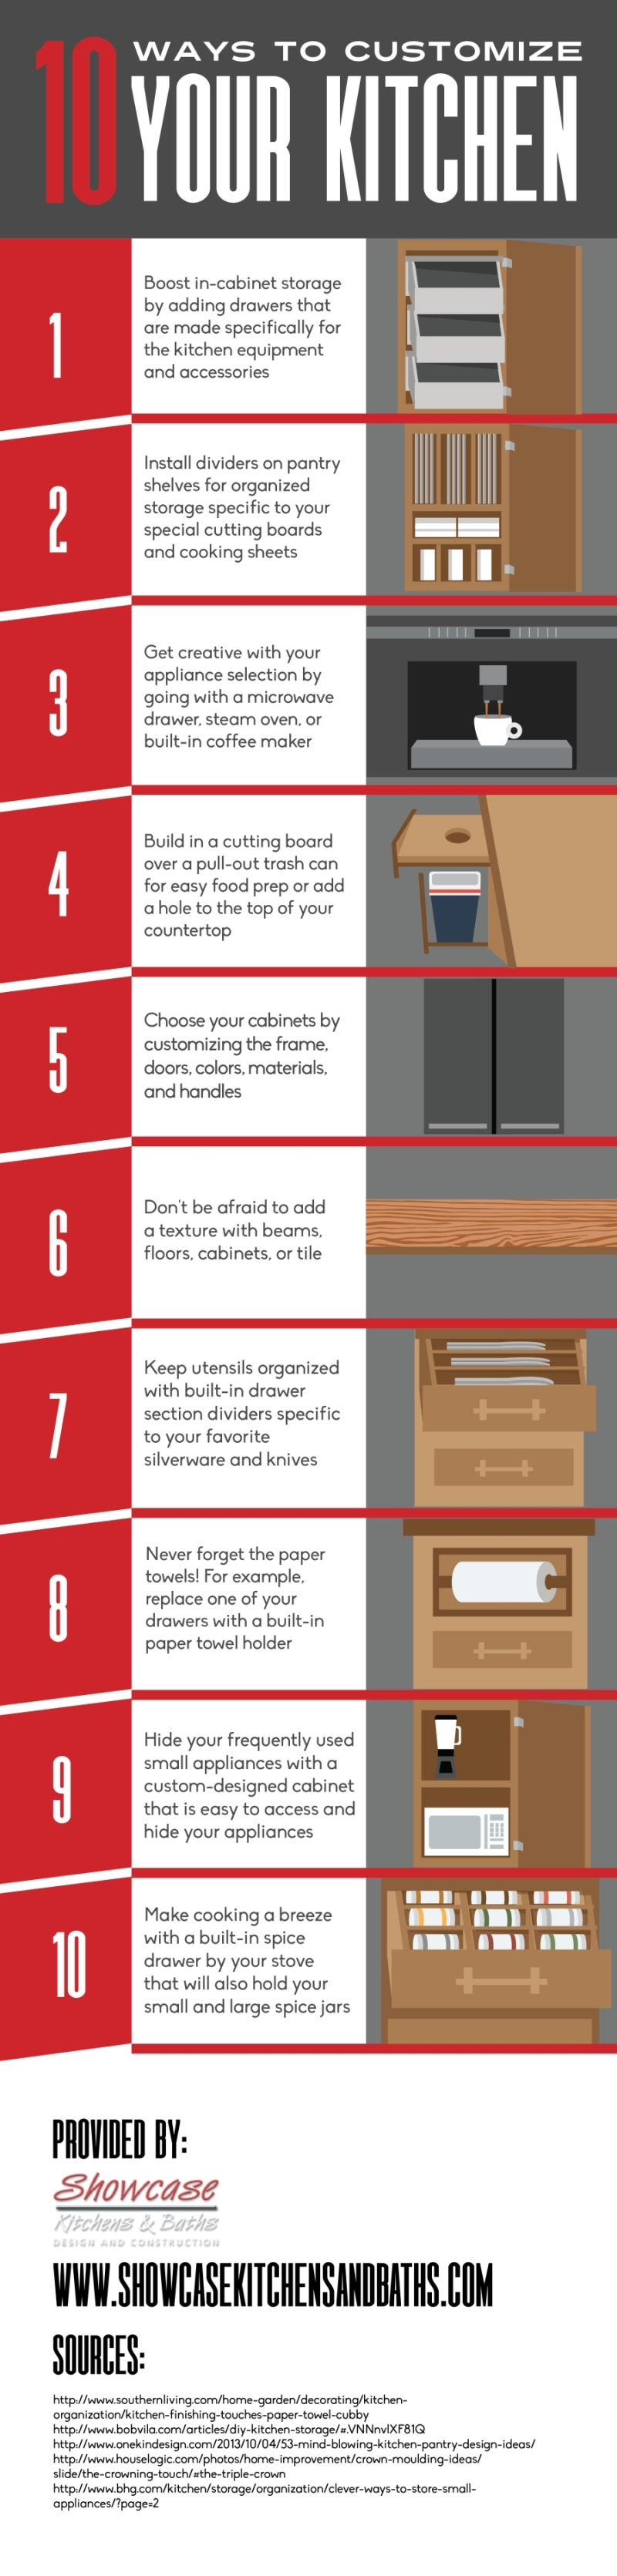 10 Ways to Customize Your Kitchen [INFOGRAPHIC]   Kitchen and Bath ...